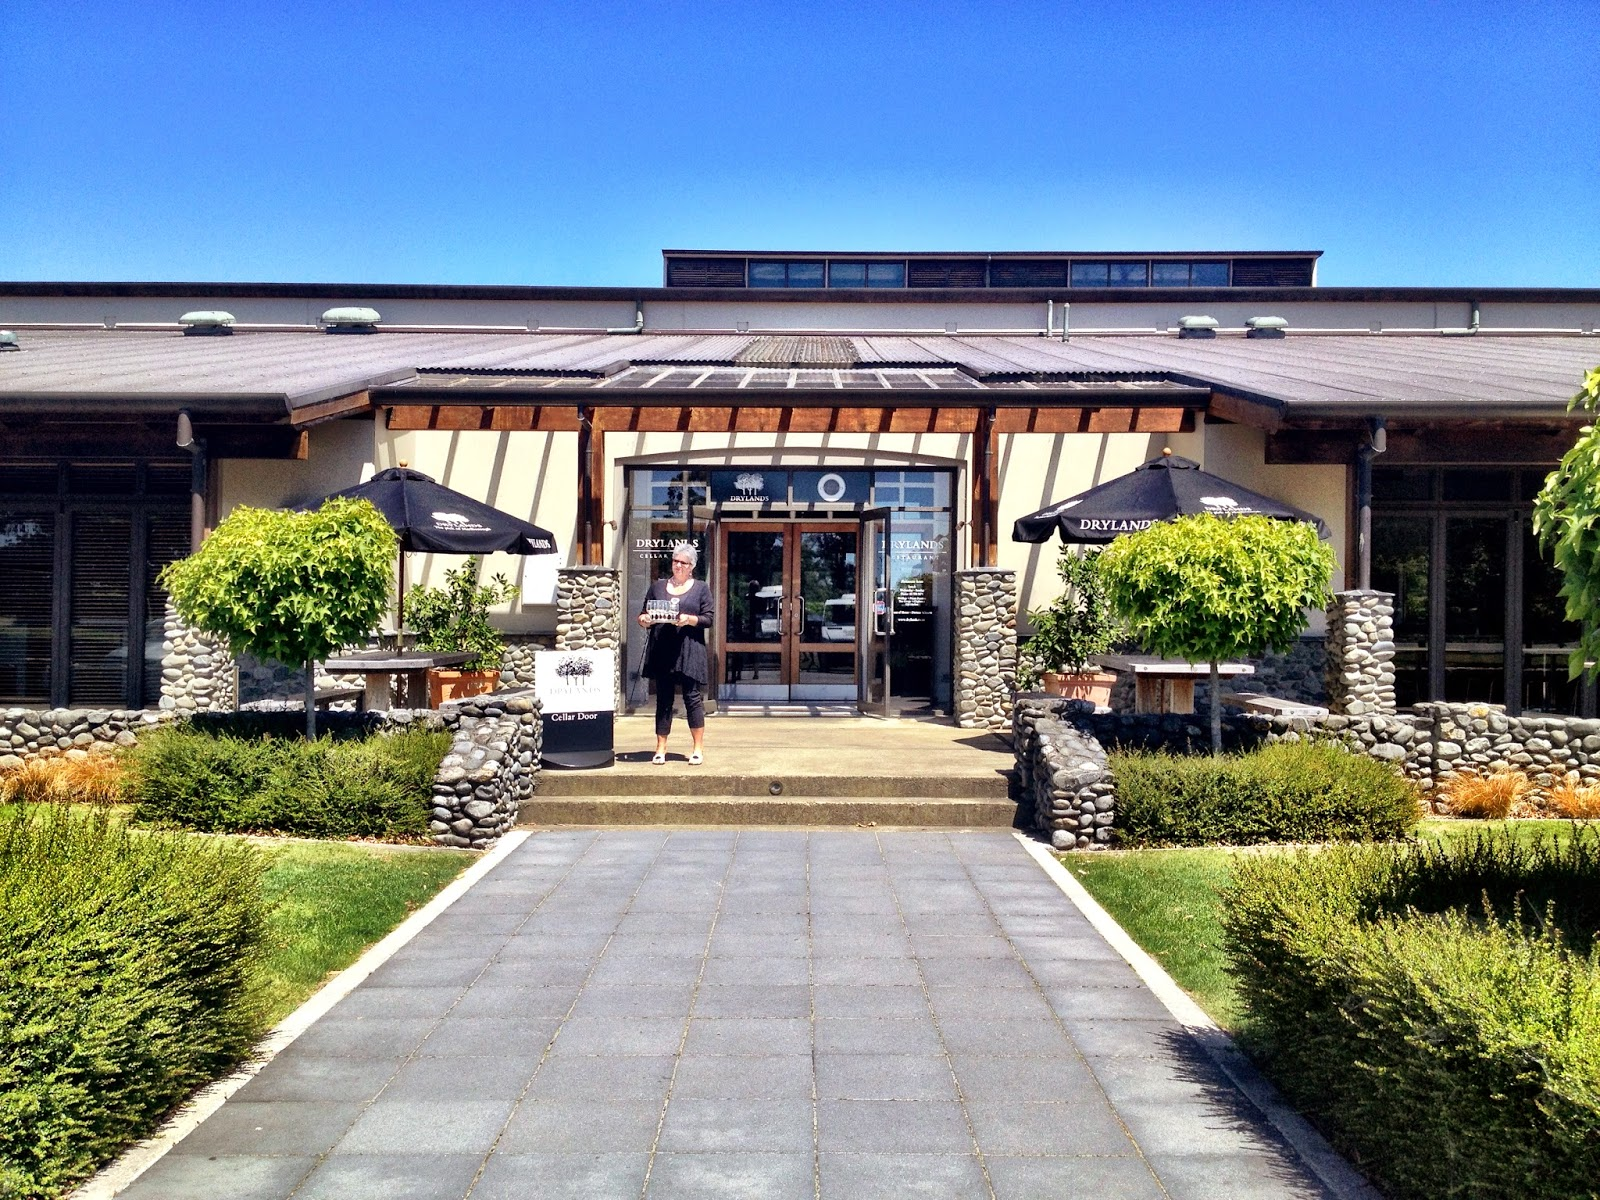 Drylands winery, Marlborough, New Zealand